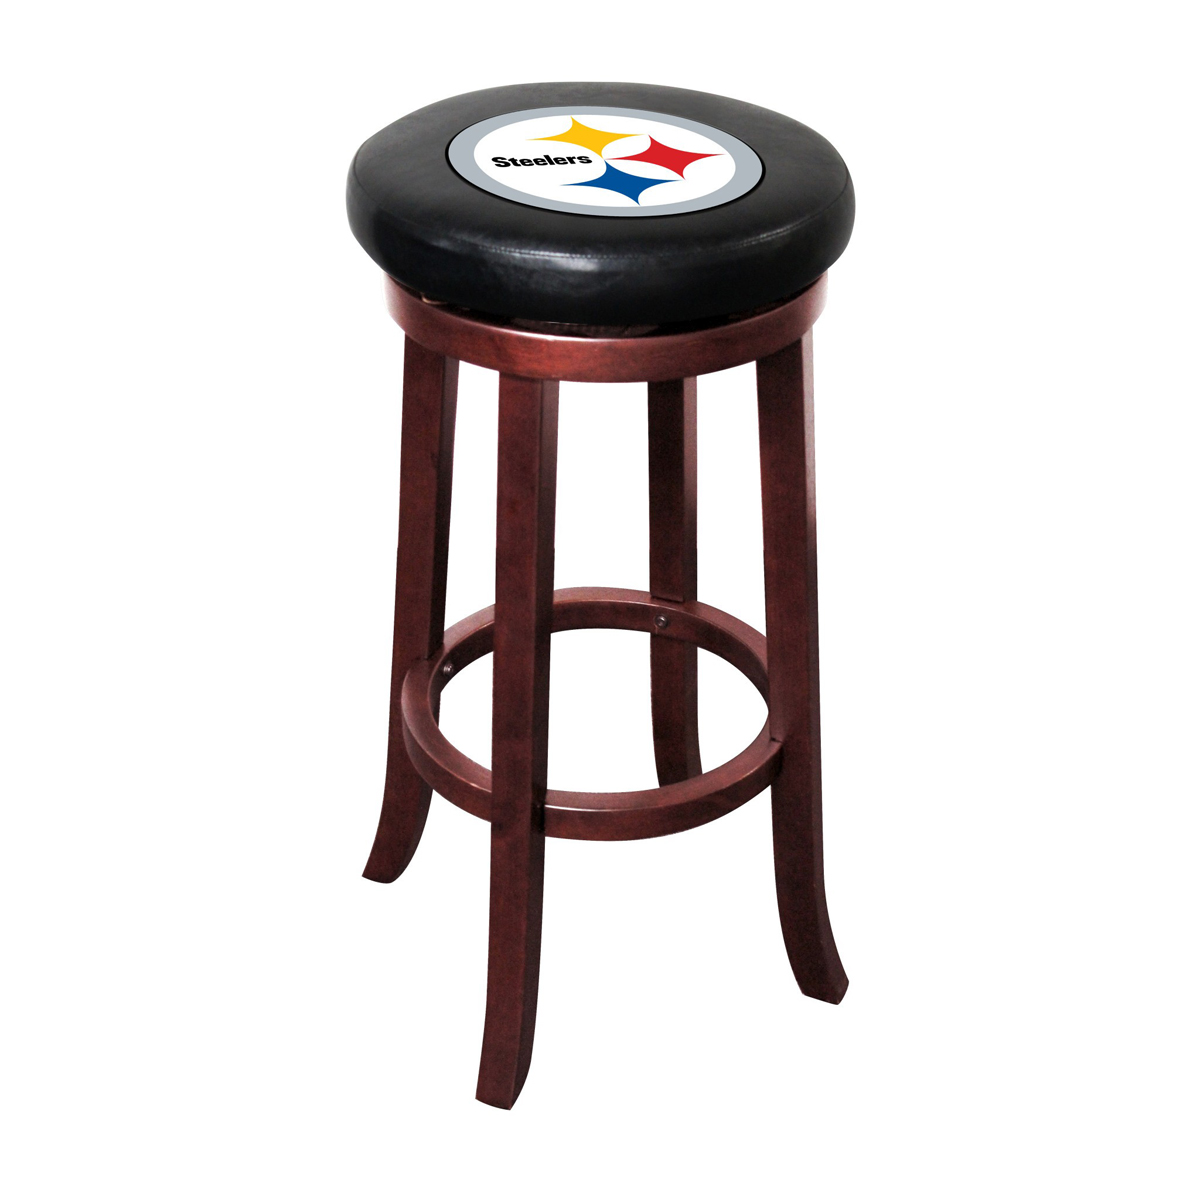 PITTSBURGH STEELERS WOOD BAR STOOL